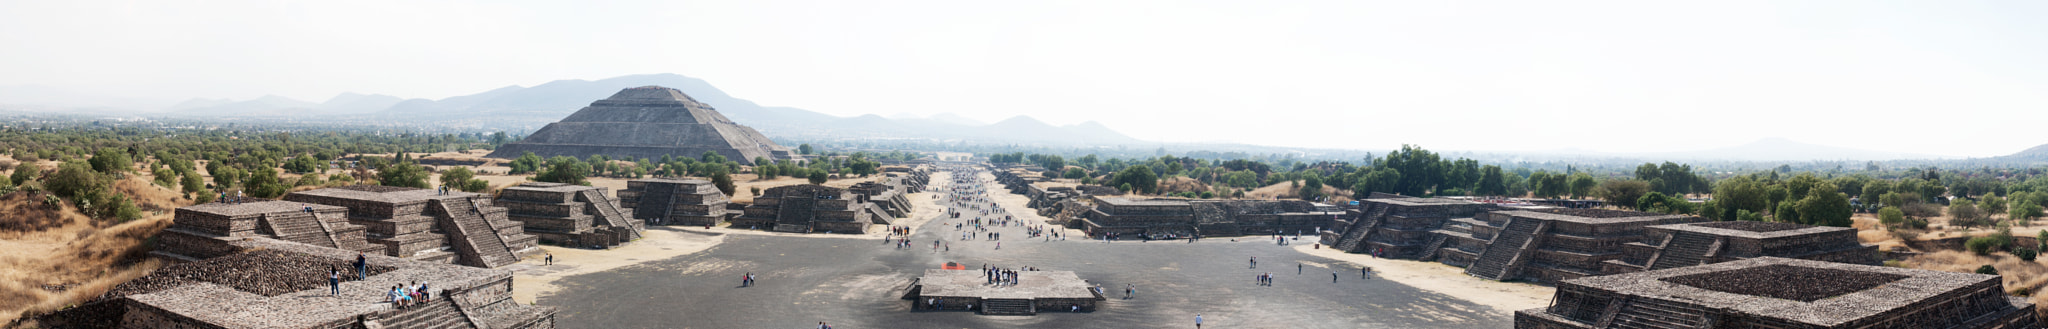 Photograph Panorama Teotihuacan by Aurelien Lina on 500px